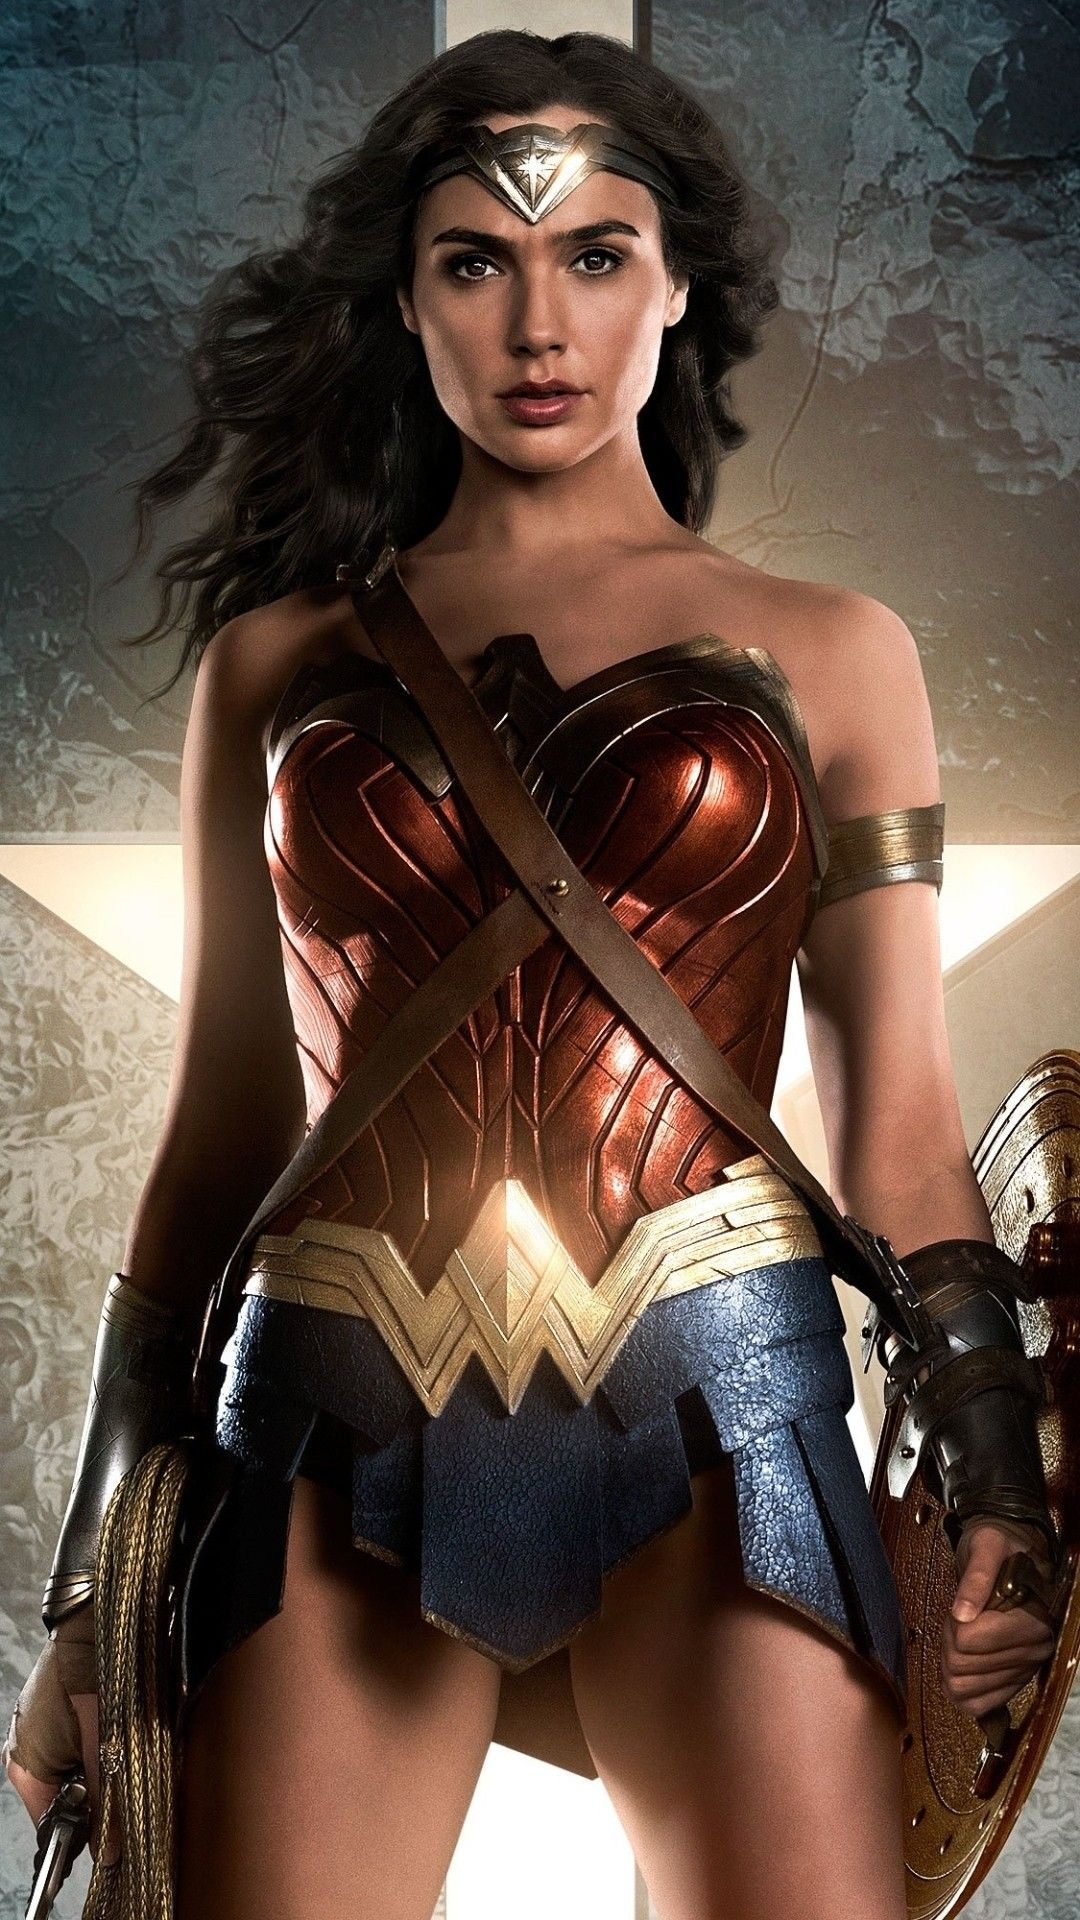 1080x1920 Wonder Woman Wallpaper For Android - Best iPhone Wallpaper ...